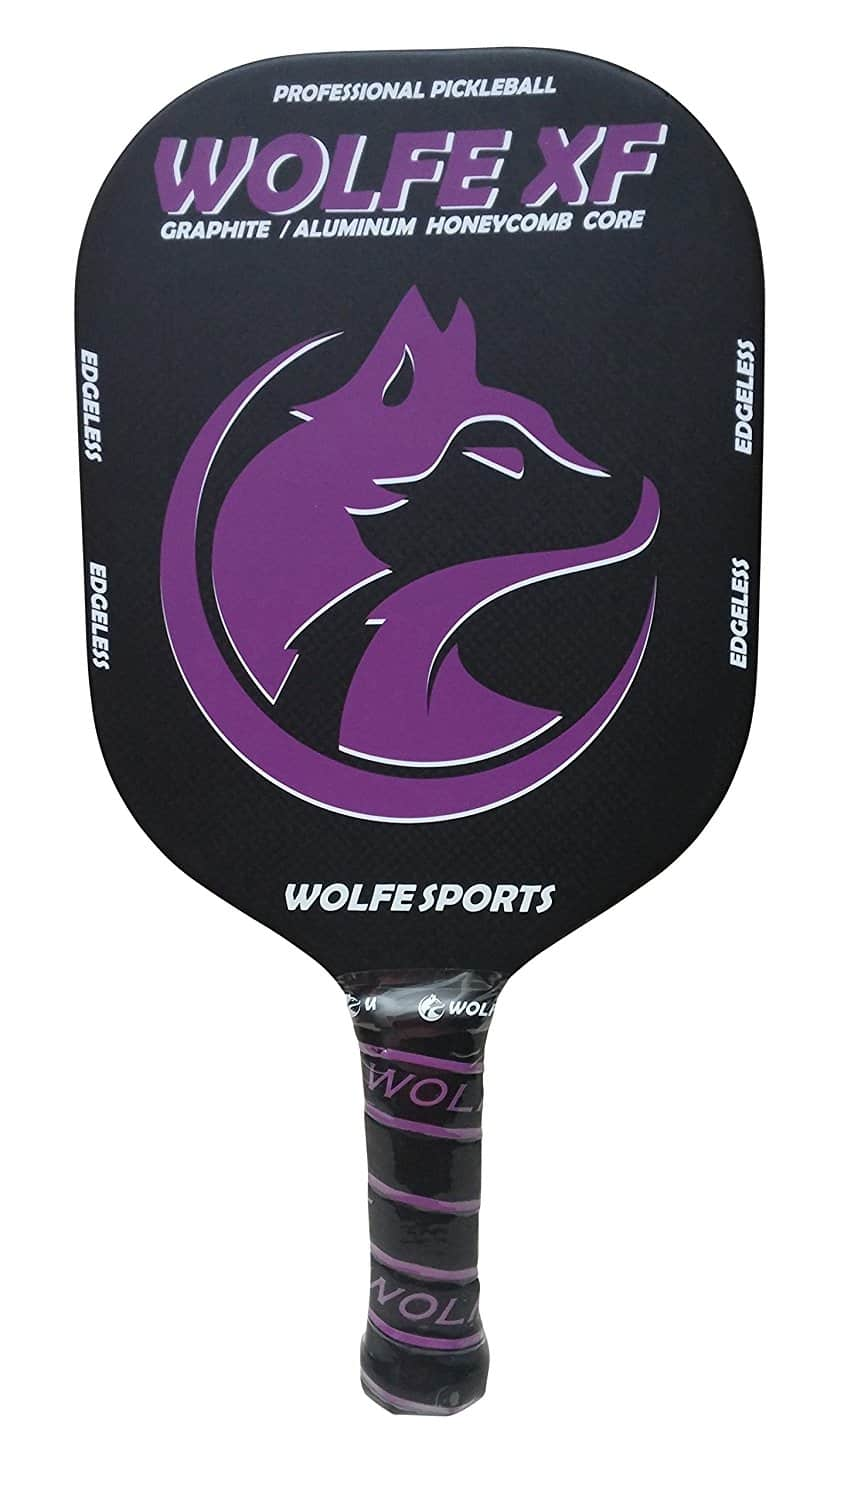 Wolfe XF 3K Edgeless Pickleball Paddle